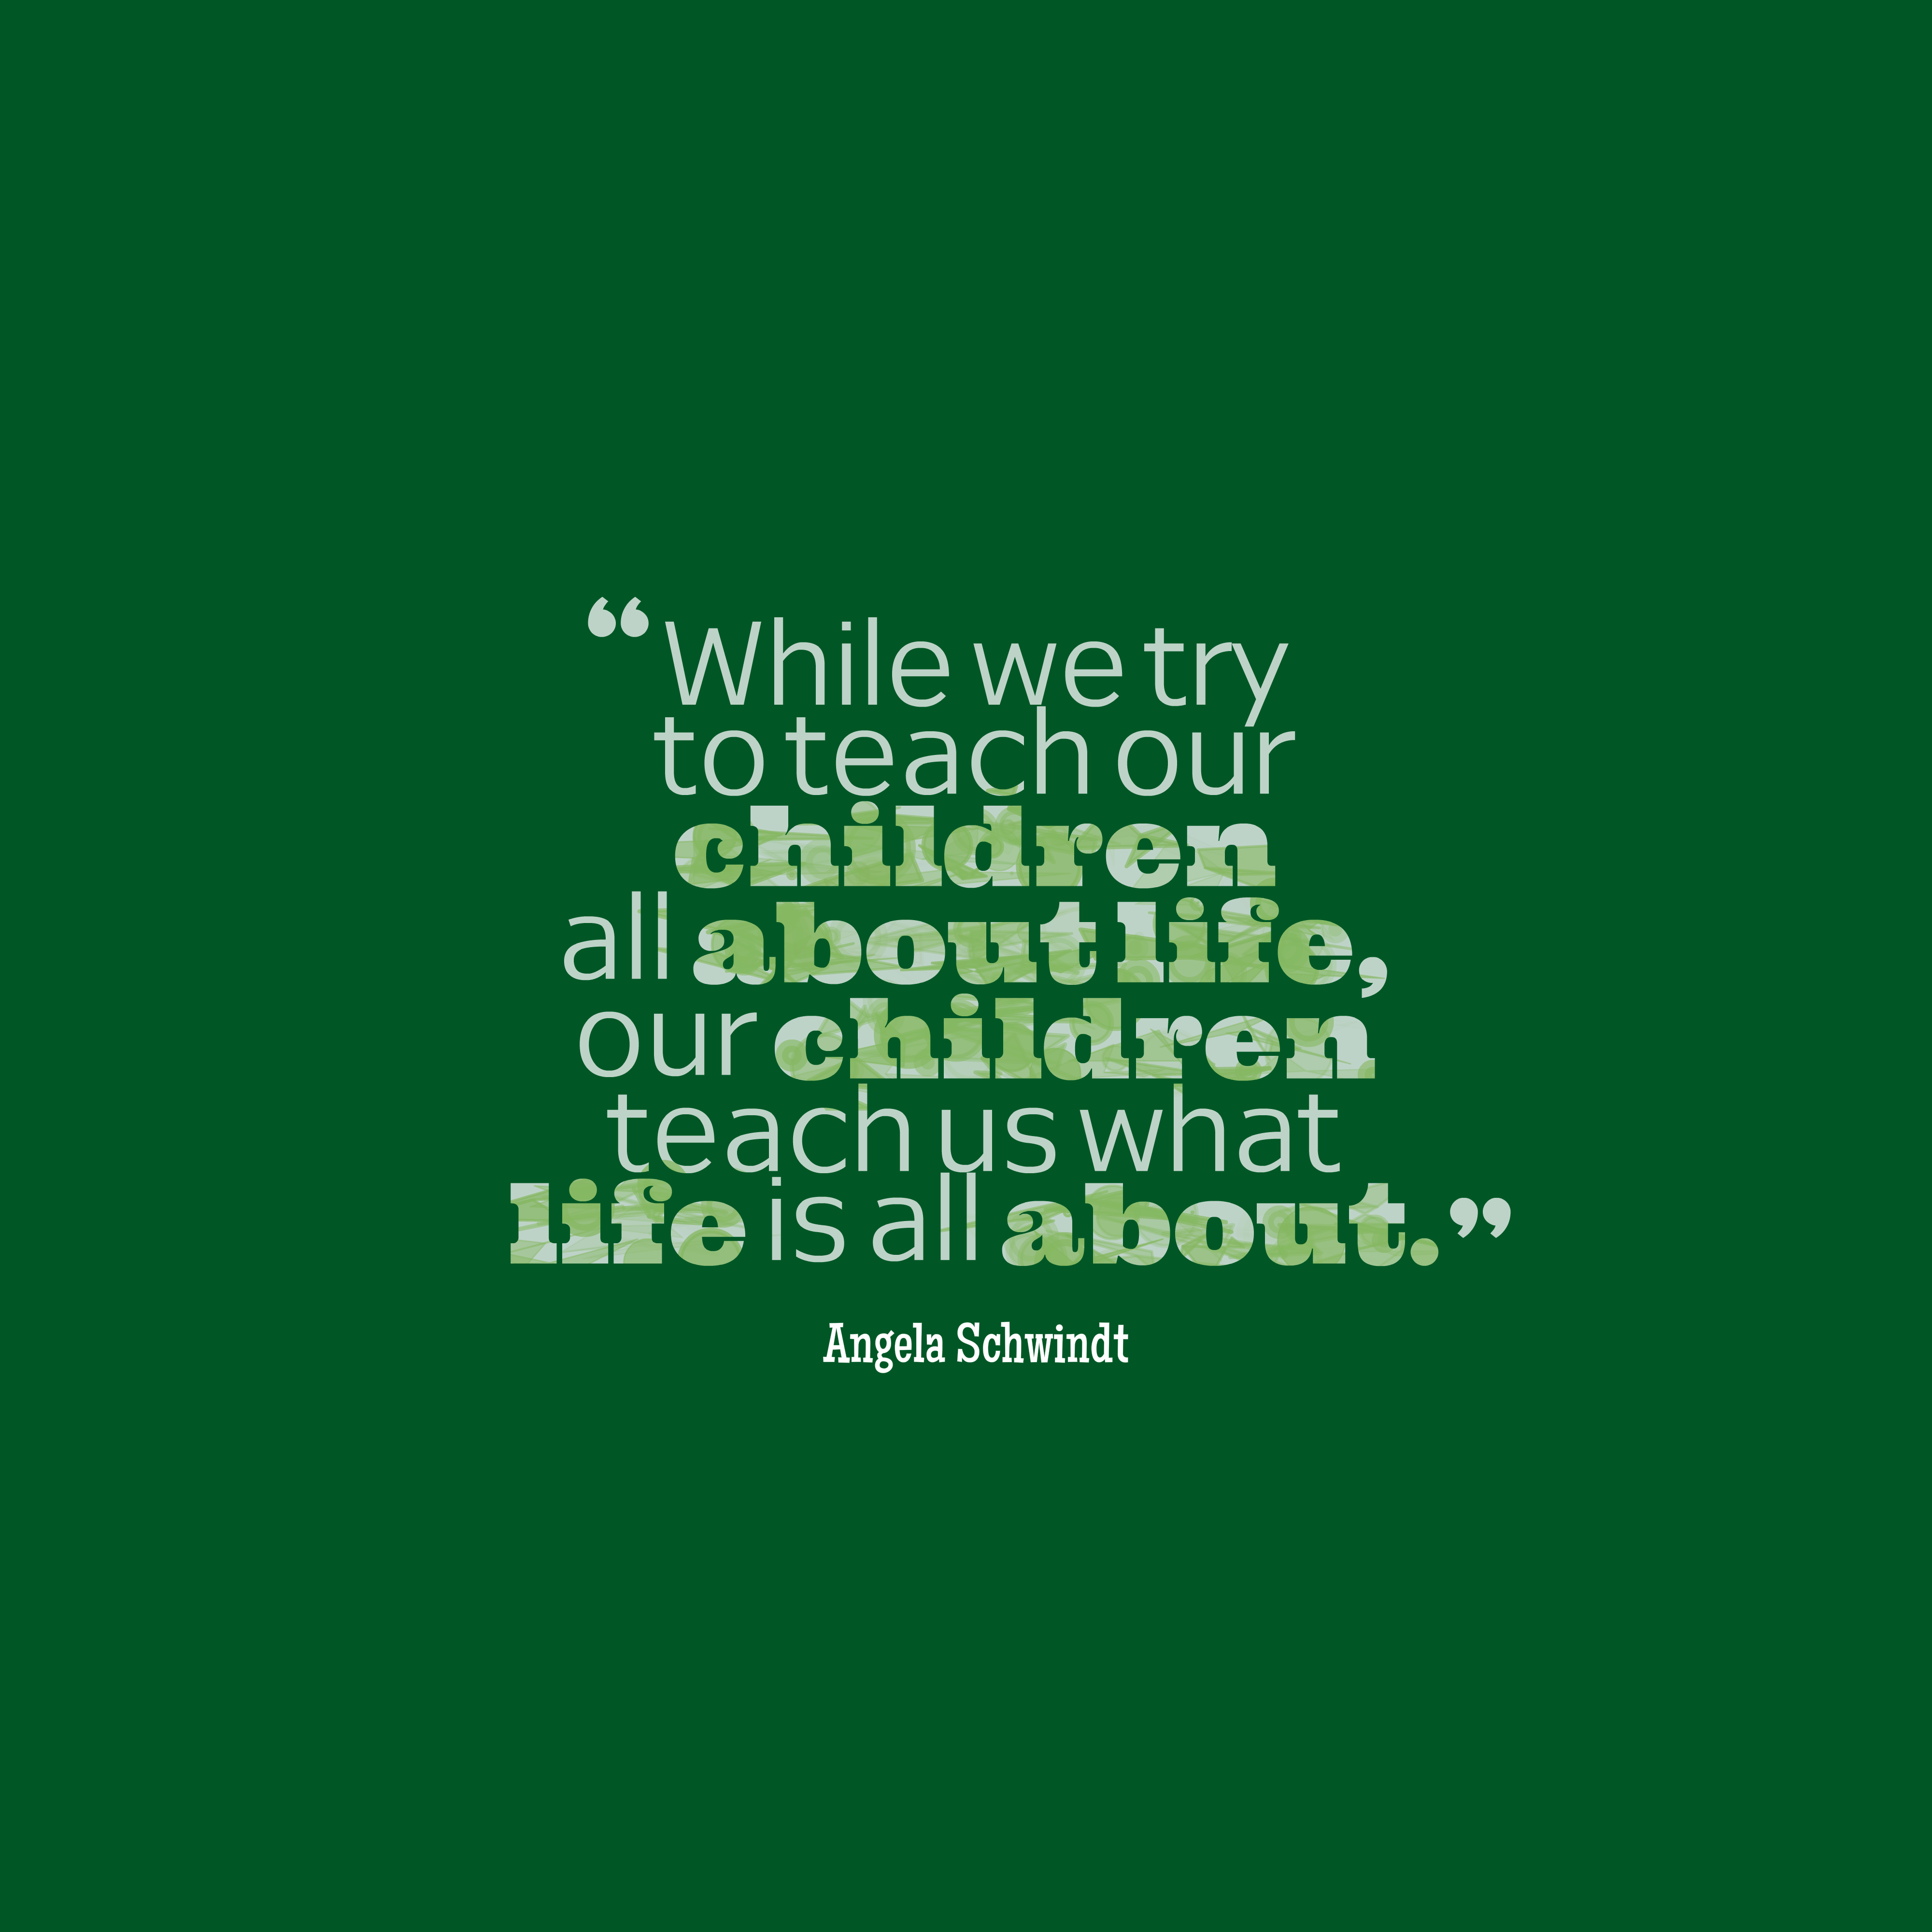 Quotes image of While we try to teach our children all about life, our children teach us what life is all about.